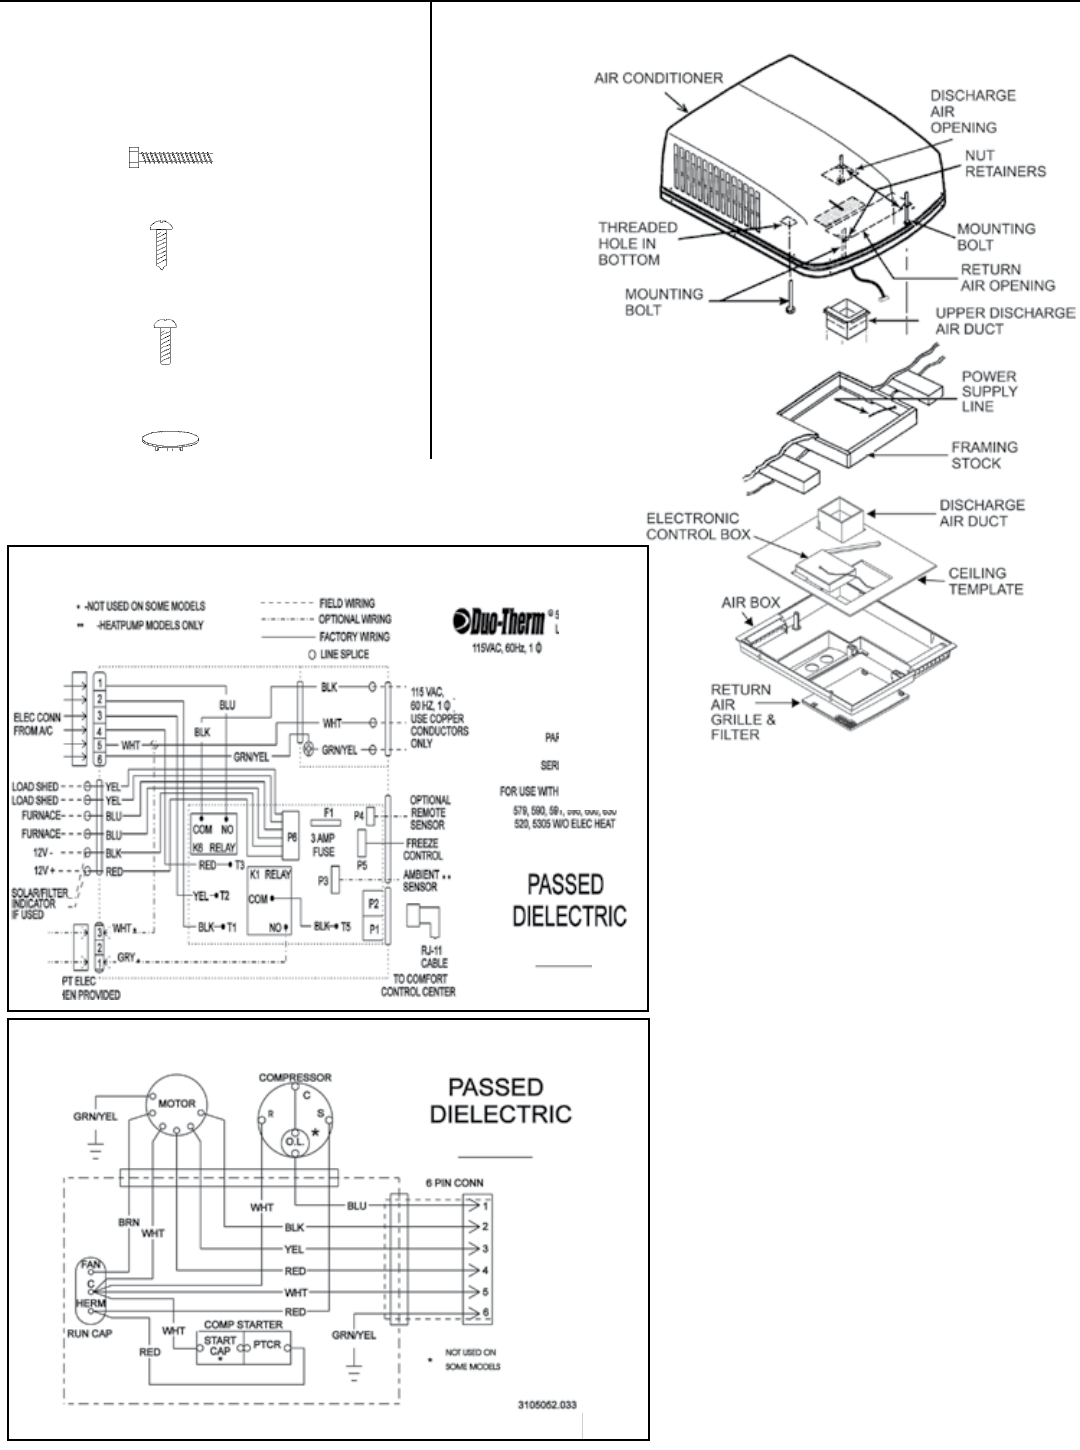 Page 12 of Dometic Air Conditioner 579 SERIES User Guide